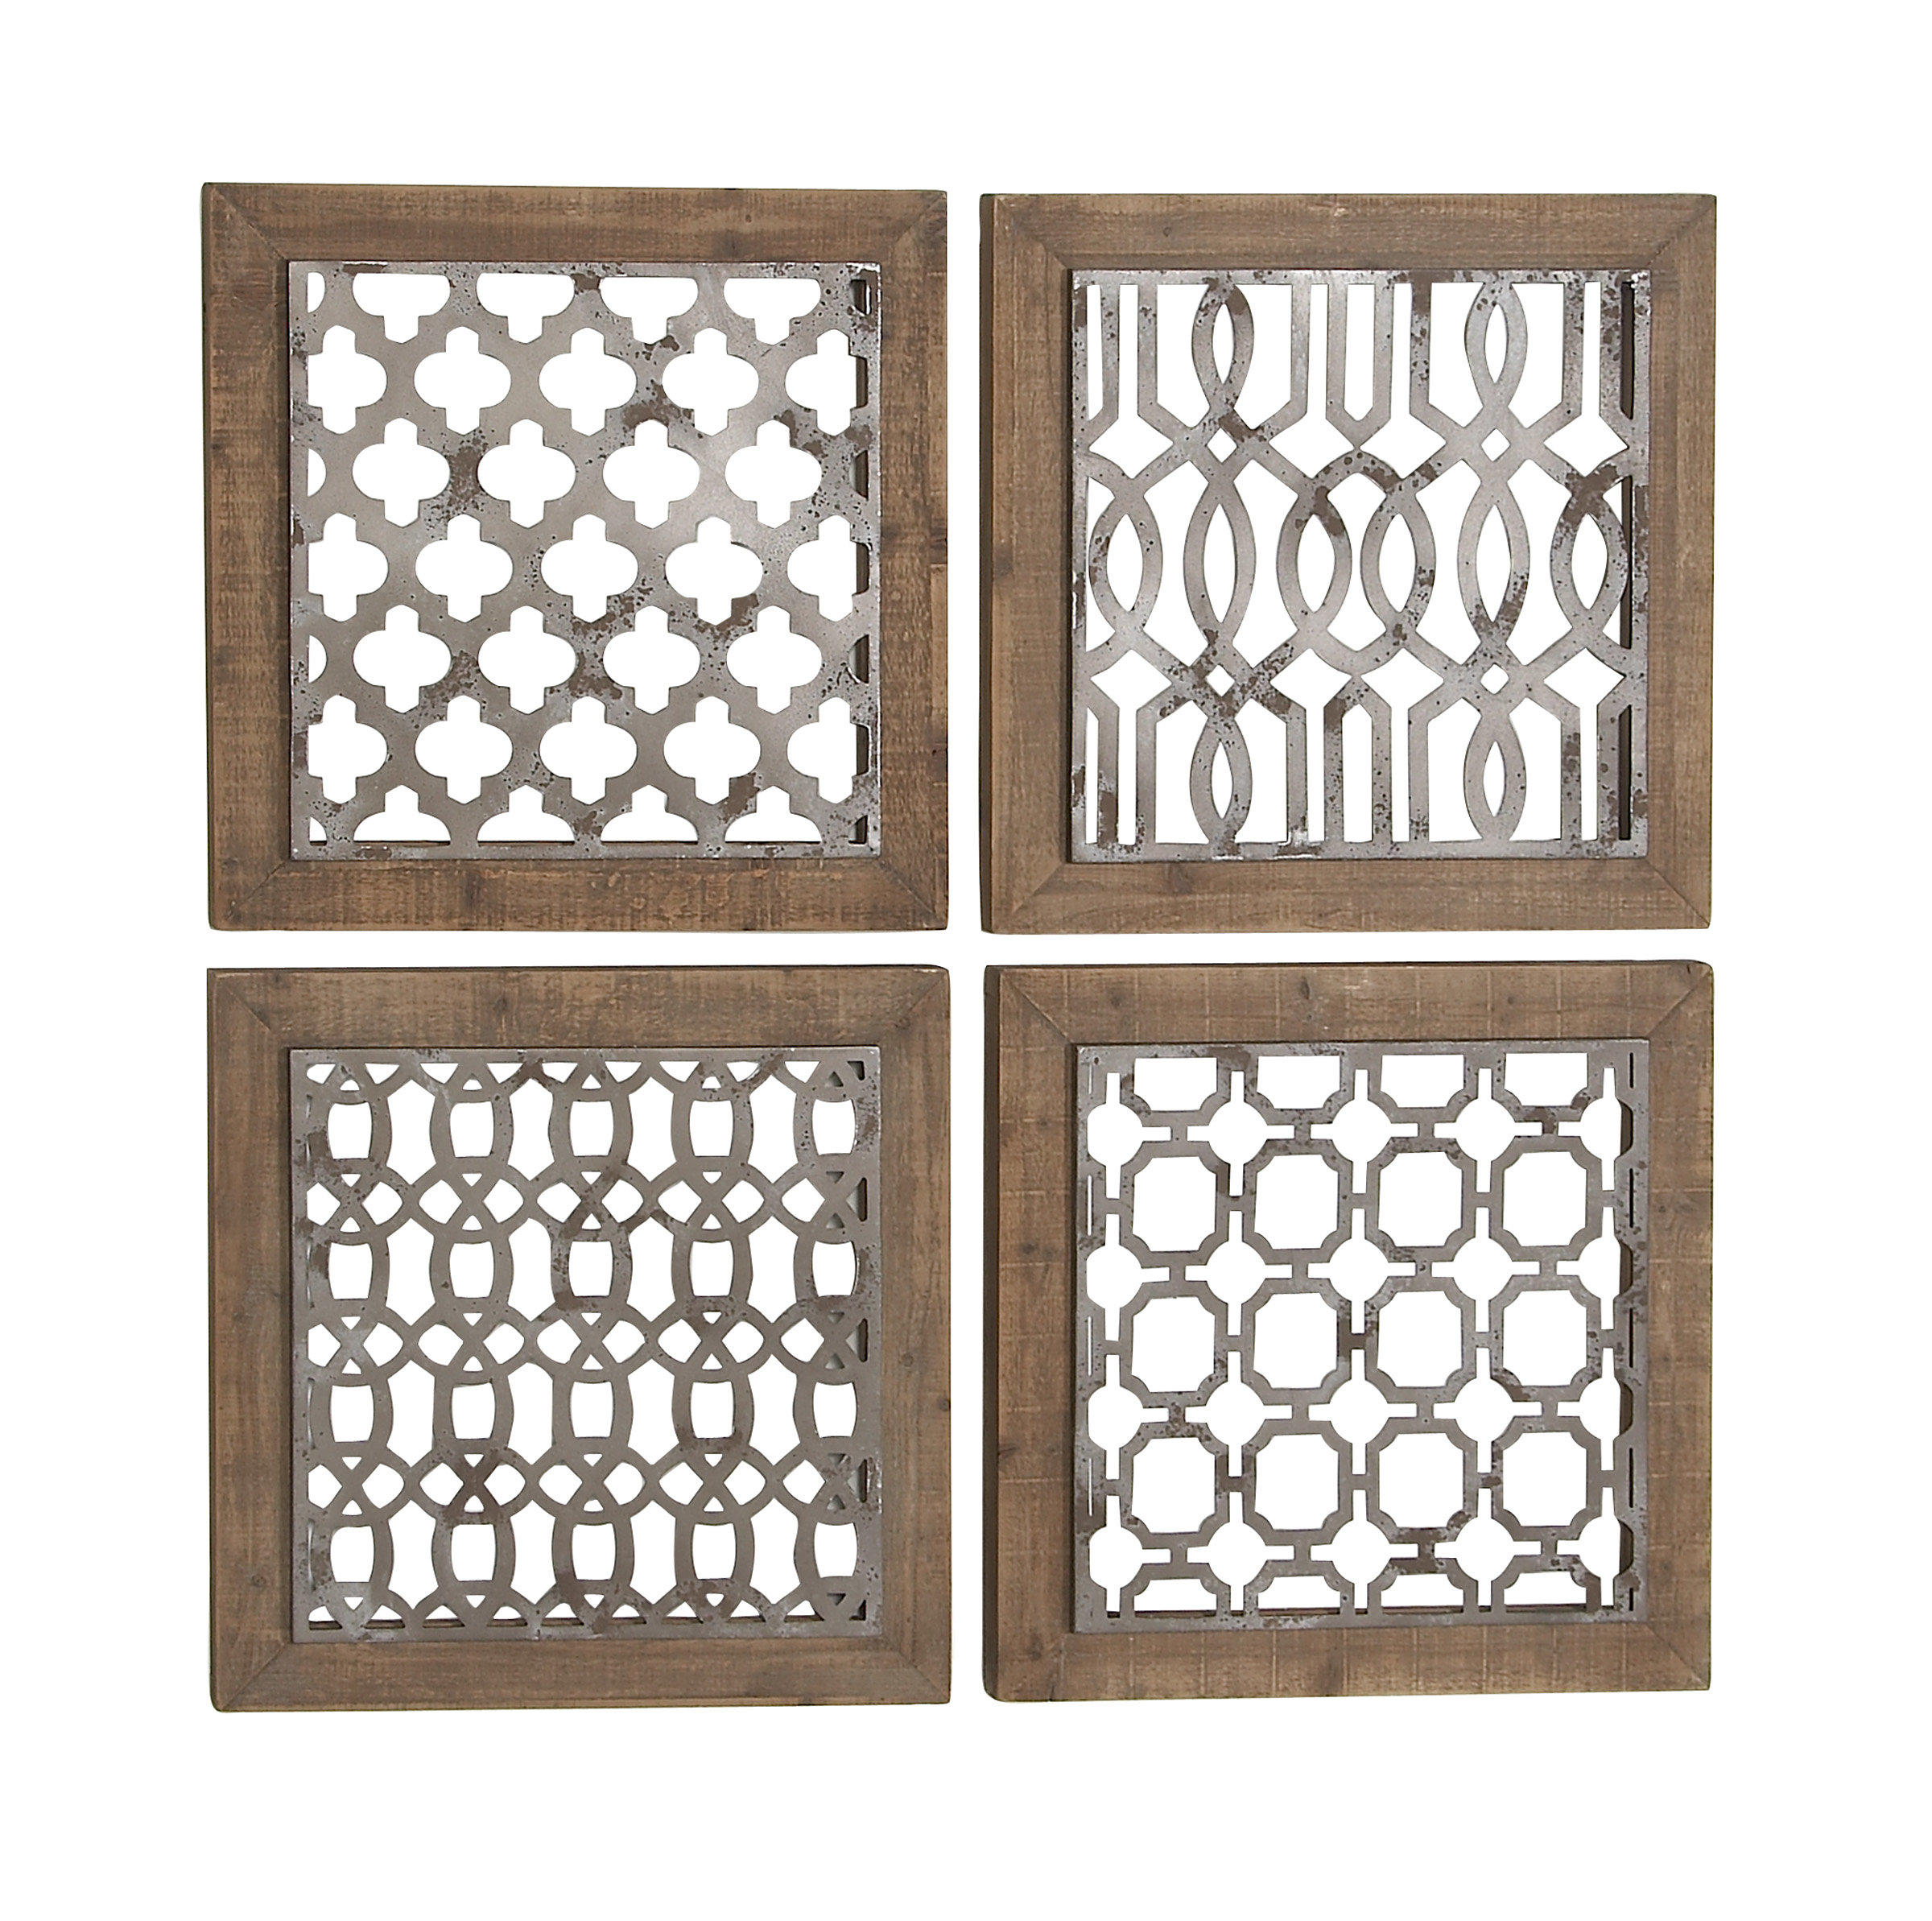 Global Inspired Wall Accents You'll Love In 2019 | Wayfair regarding 4 Piece Handwoven Wheel Wall Decor Sets (Image 17 of 30)